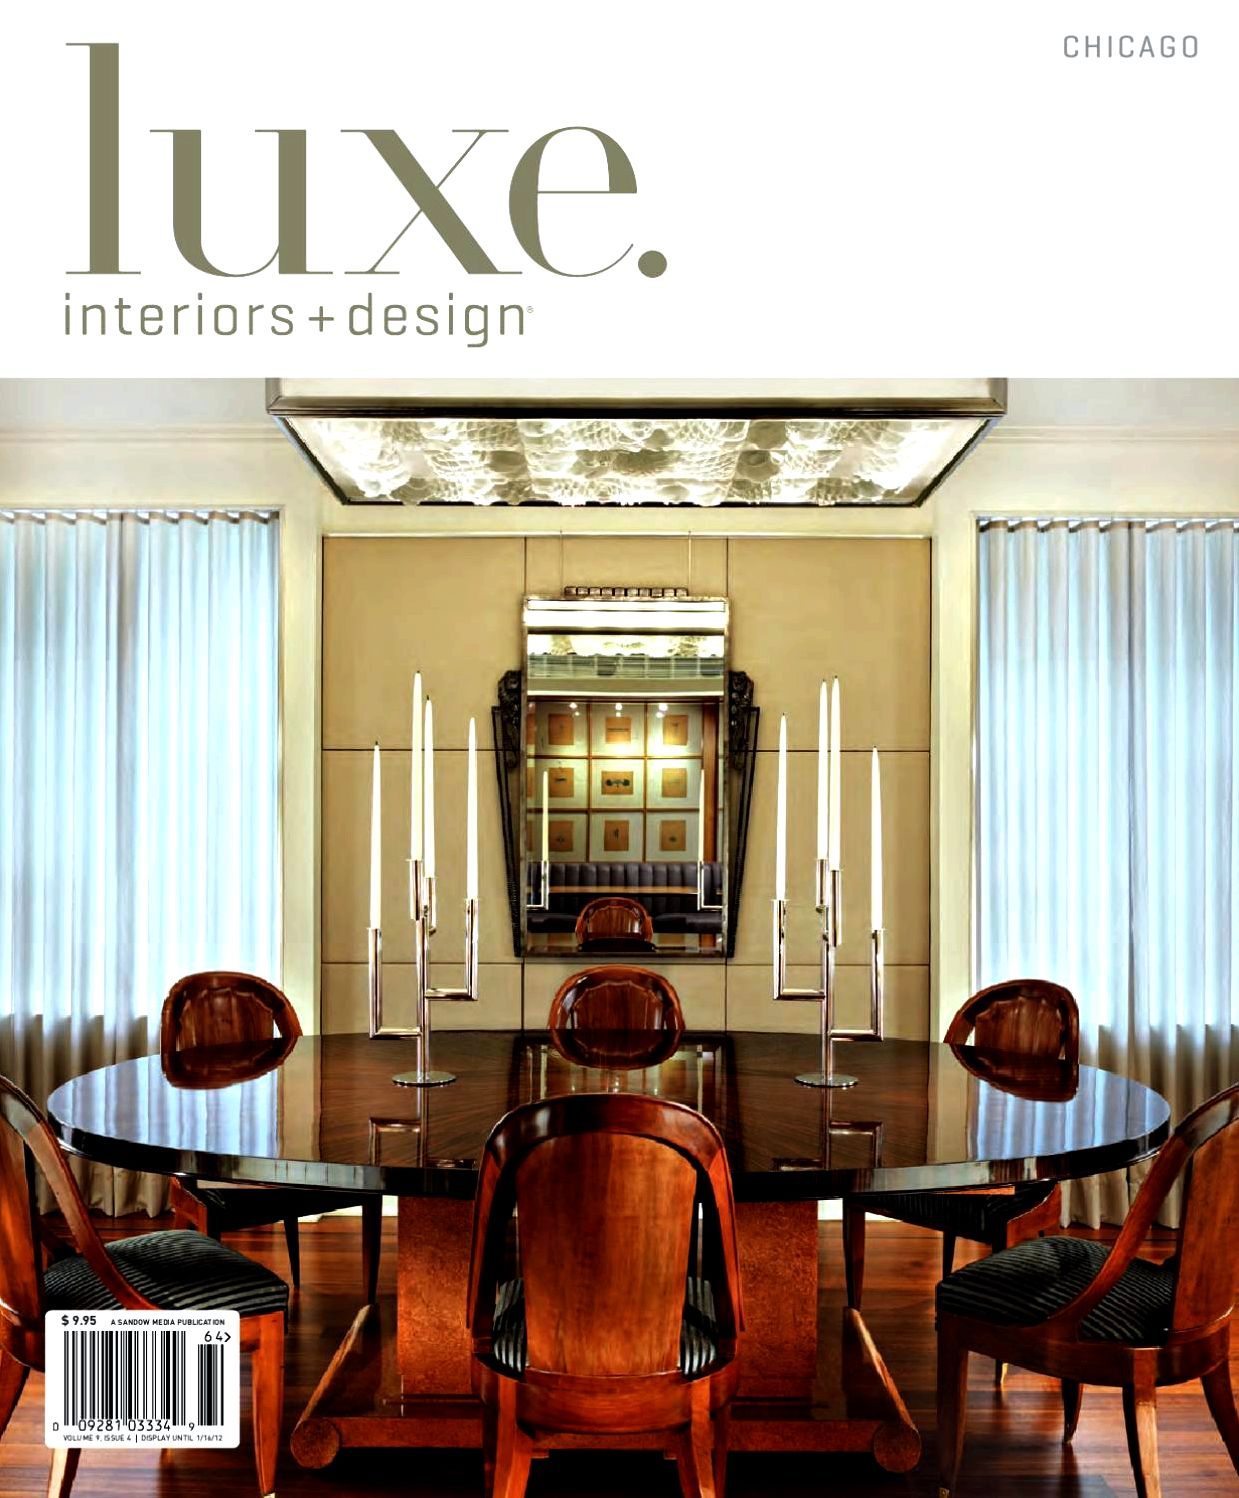 Cambria partners with luxe interiors + design and jiun ho corporation. on innovative quarta movement furnishings and decor - sandow founder, Kanning has gotten numerous